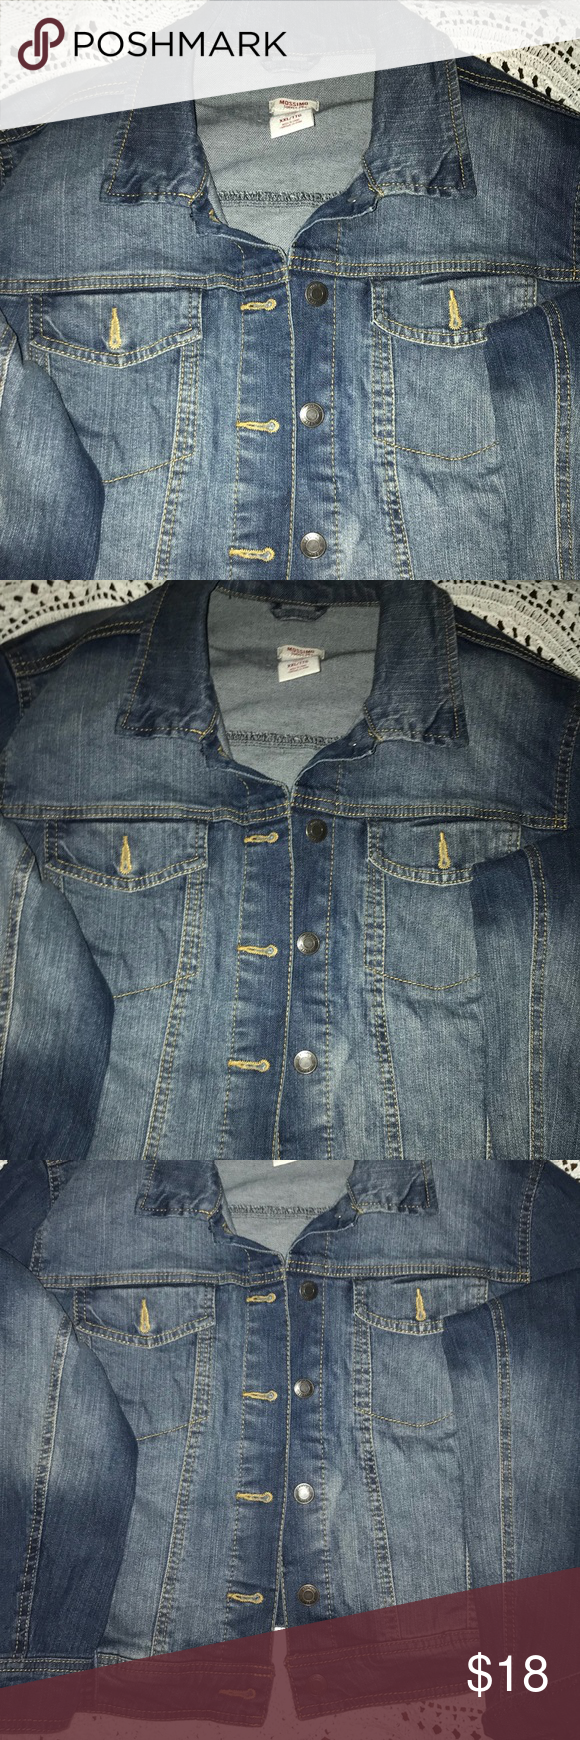 3d842bbe133d8 Jean Jacket XXL MOSSIMO SUPPLY COMPANY Size XXL JEAN JACKET Wear many ways  with anything Mossimo